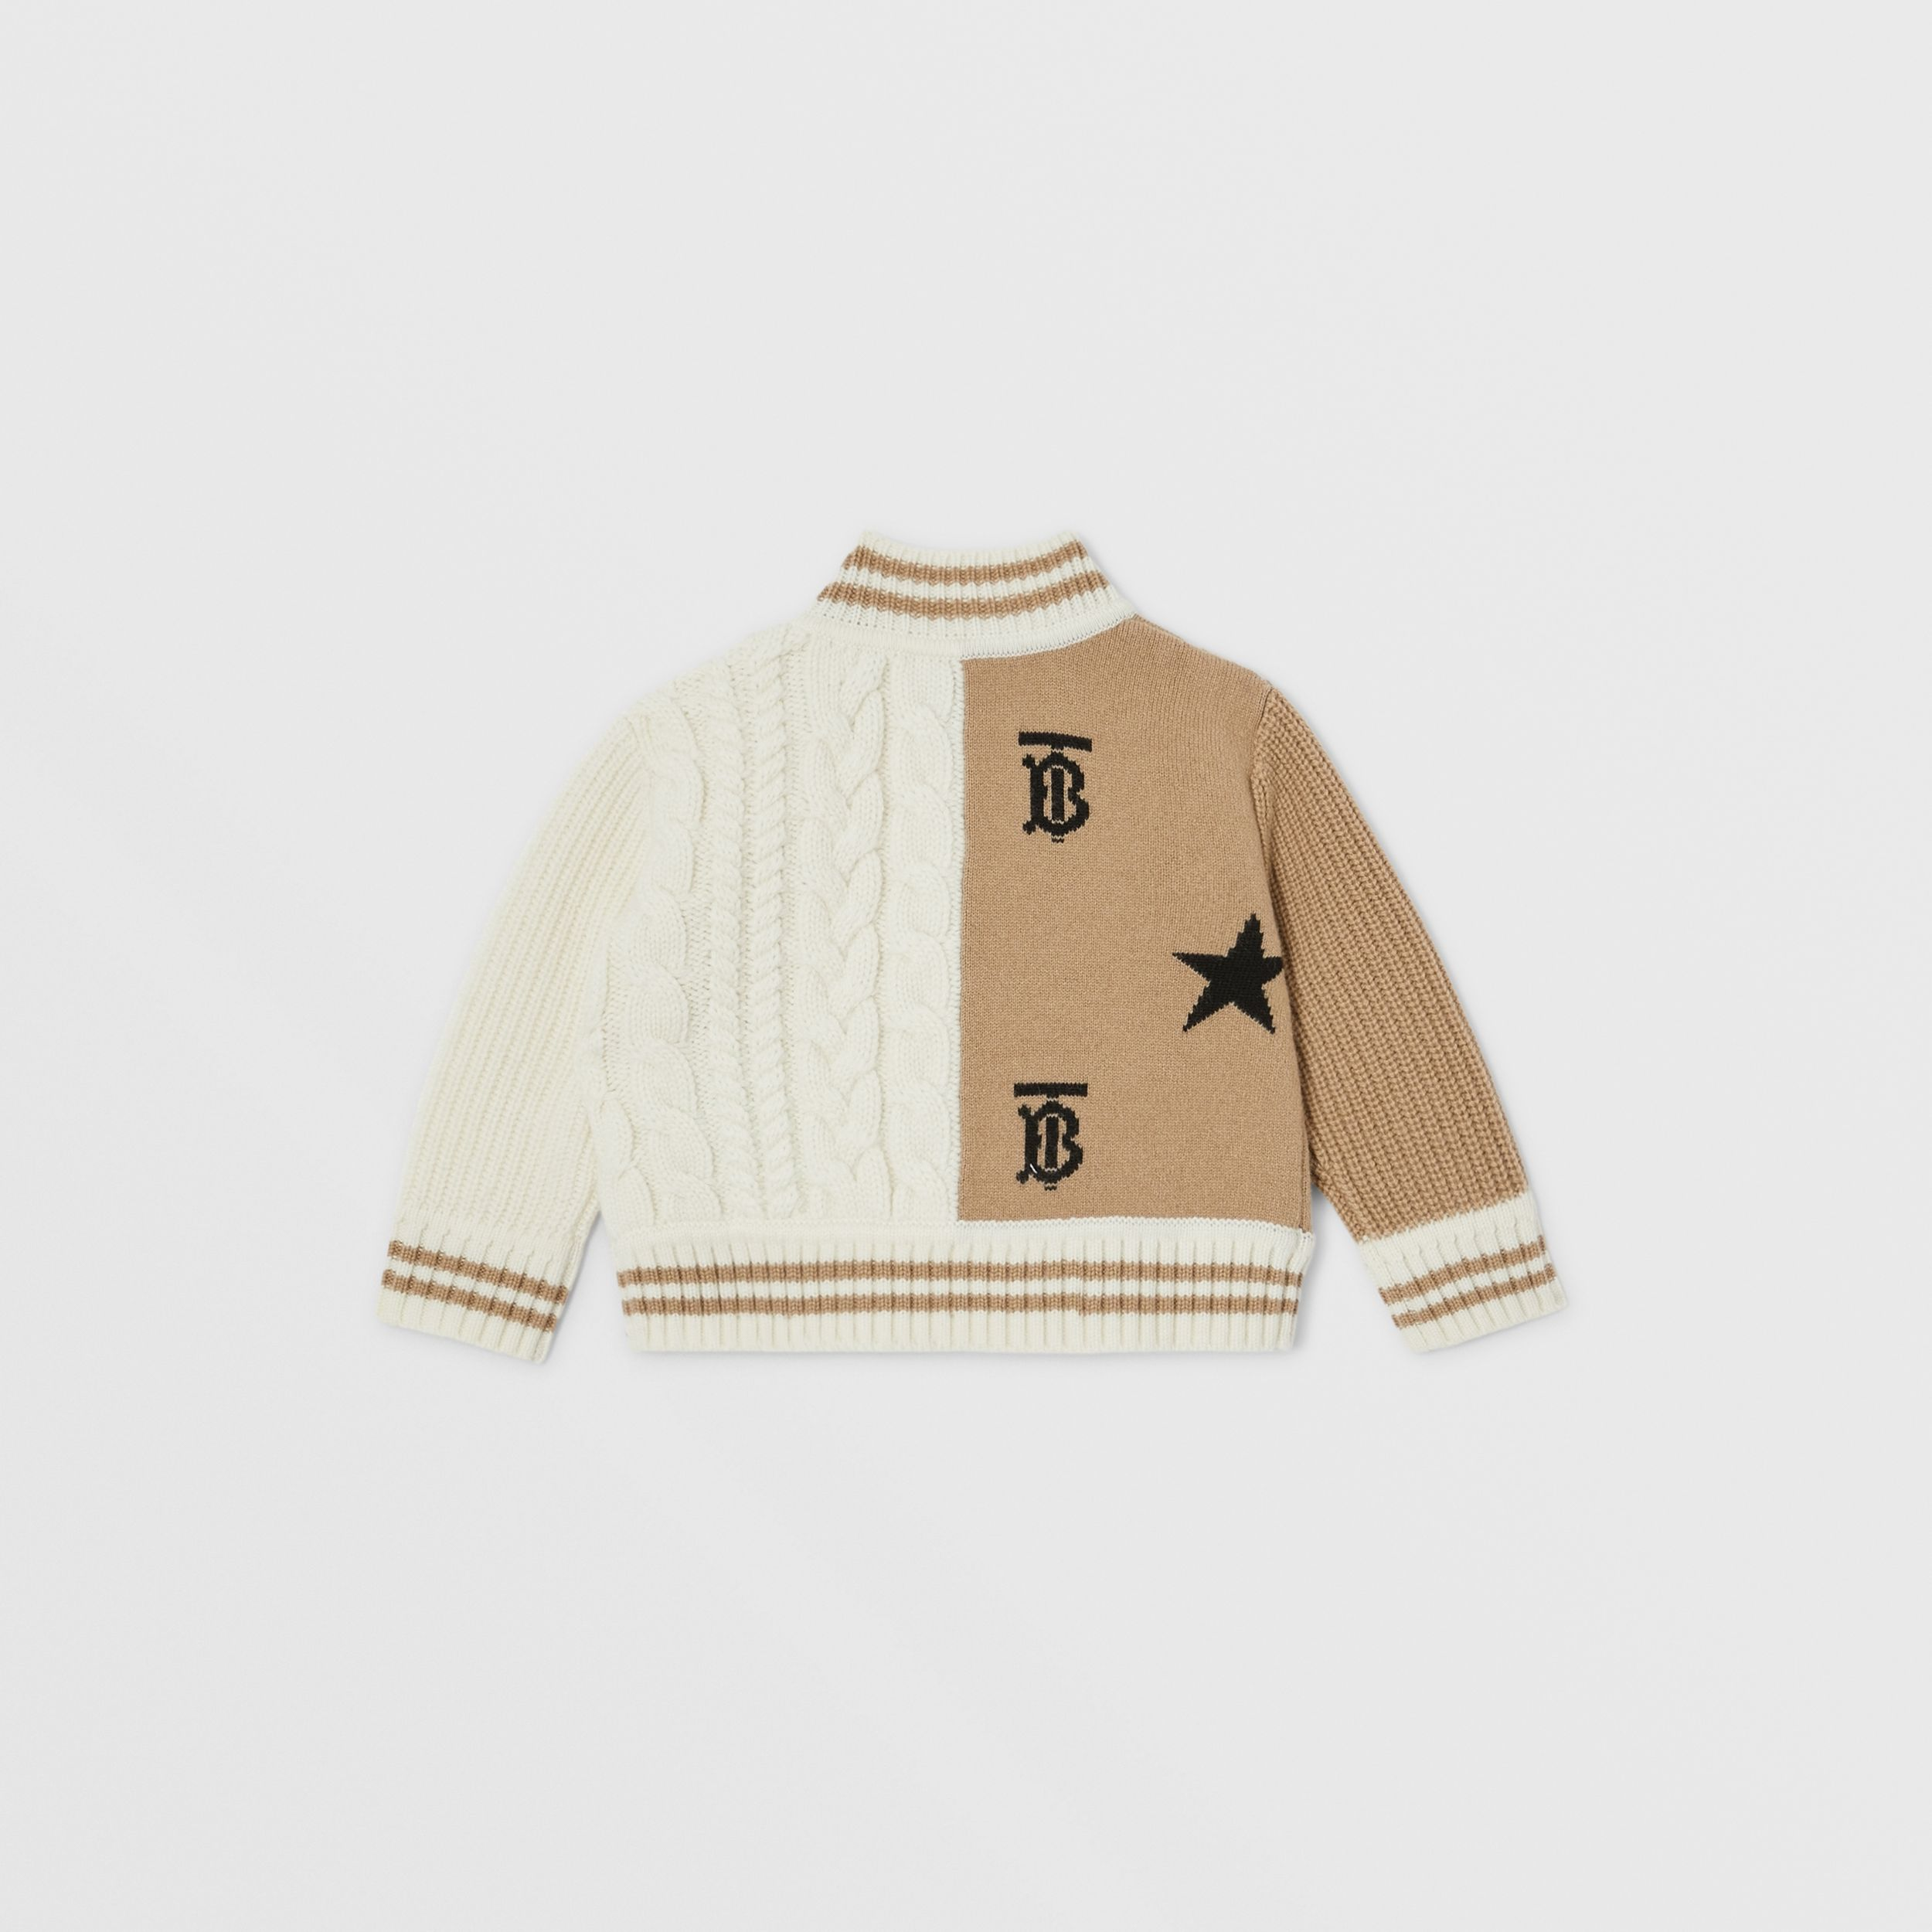 Star and Monogram Motif Wool Cashmere Blend Jacket in Archive Beige - Children | Burberry - 4